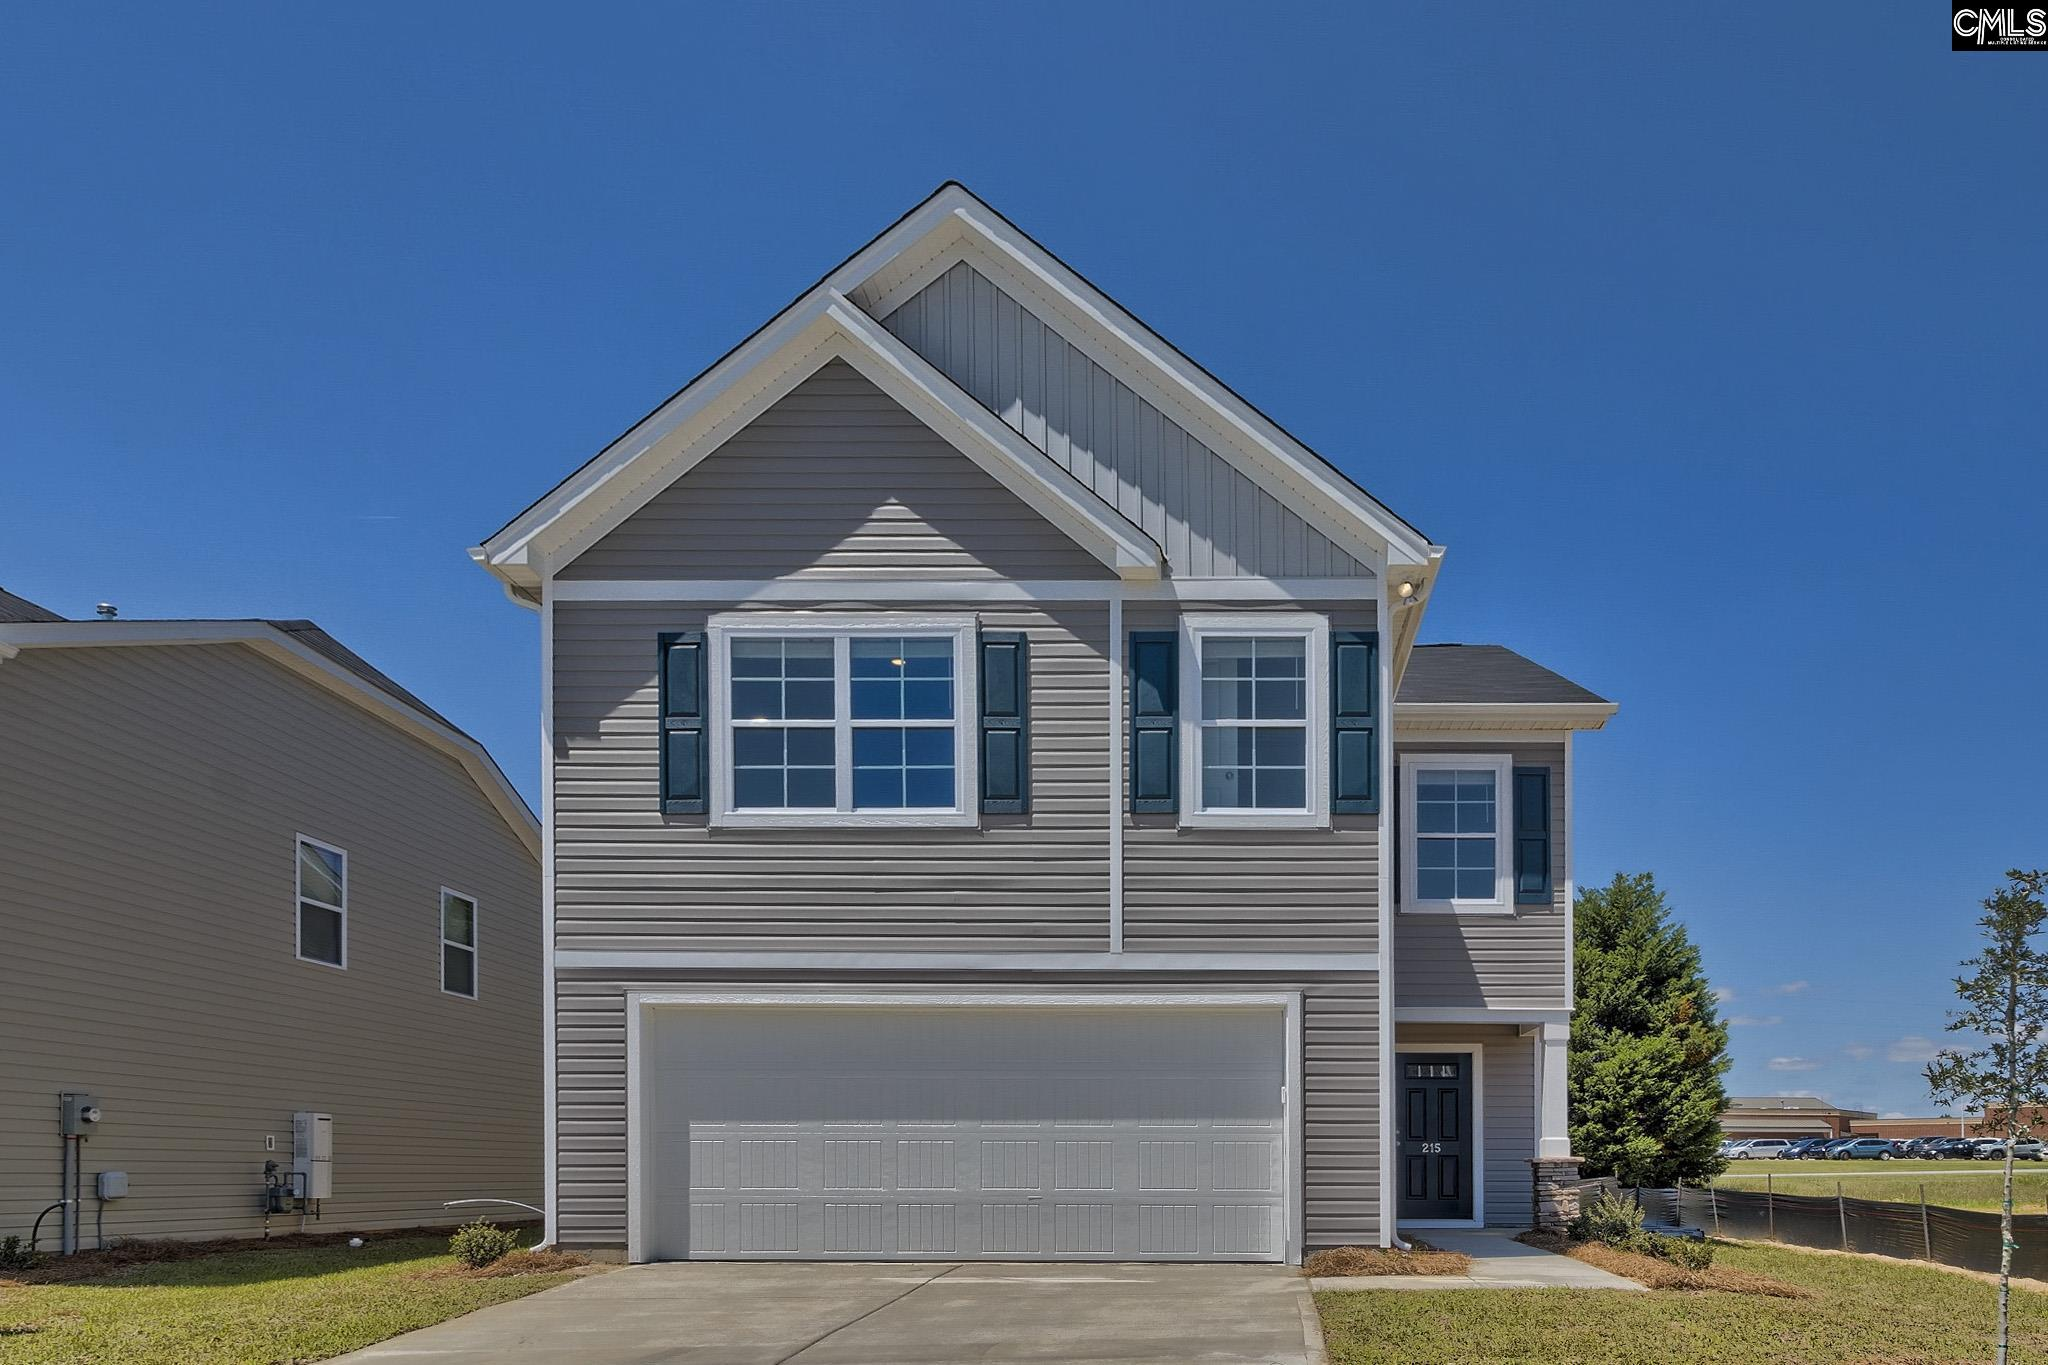 West Columbia SC Real Estate - 159 Plum Orchard West